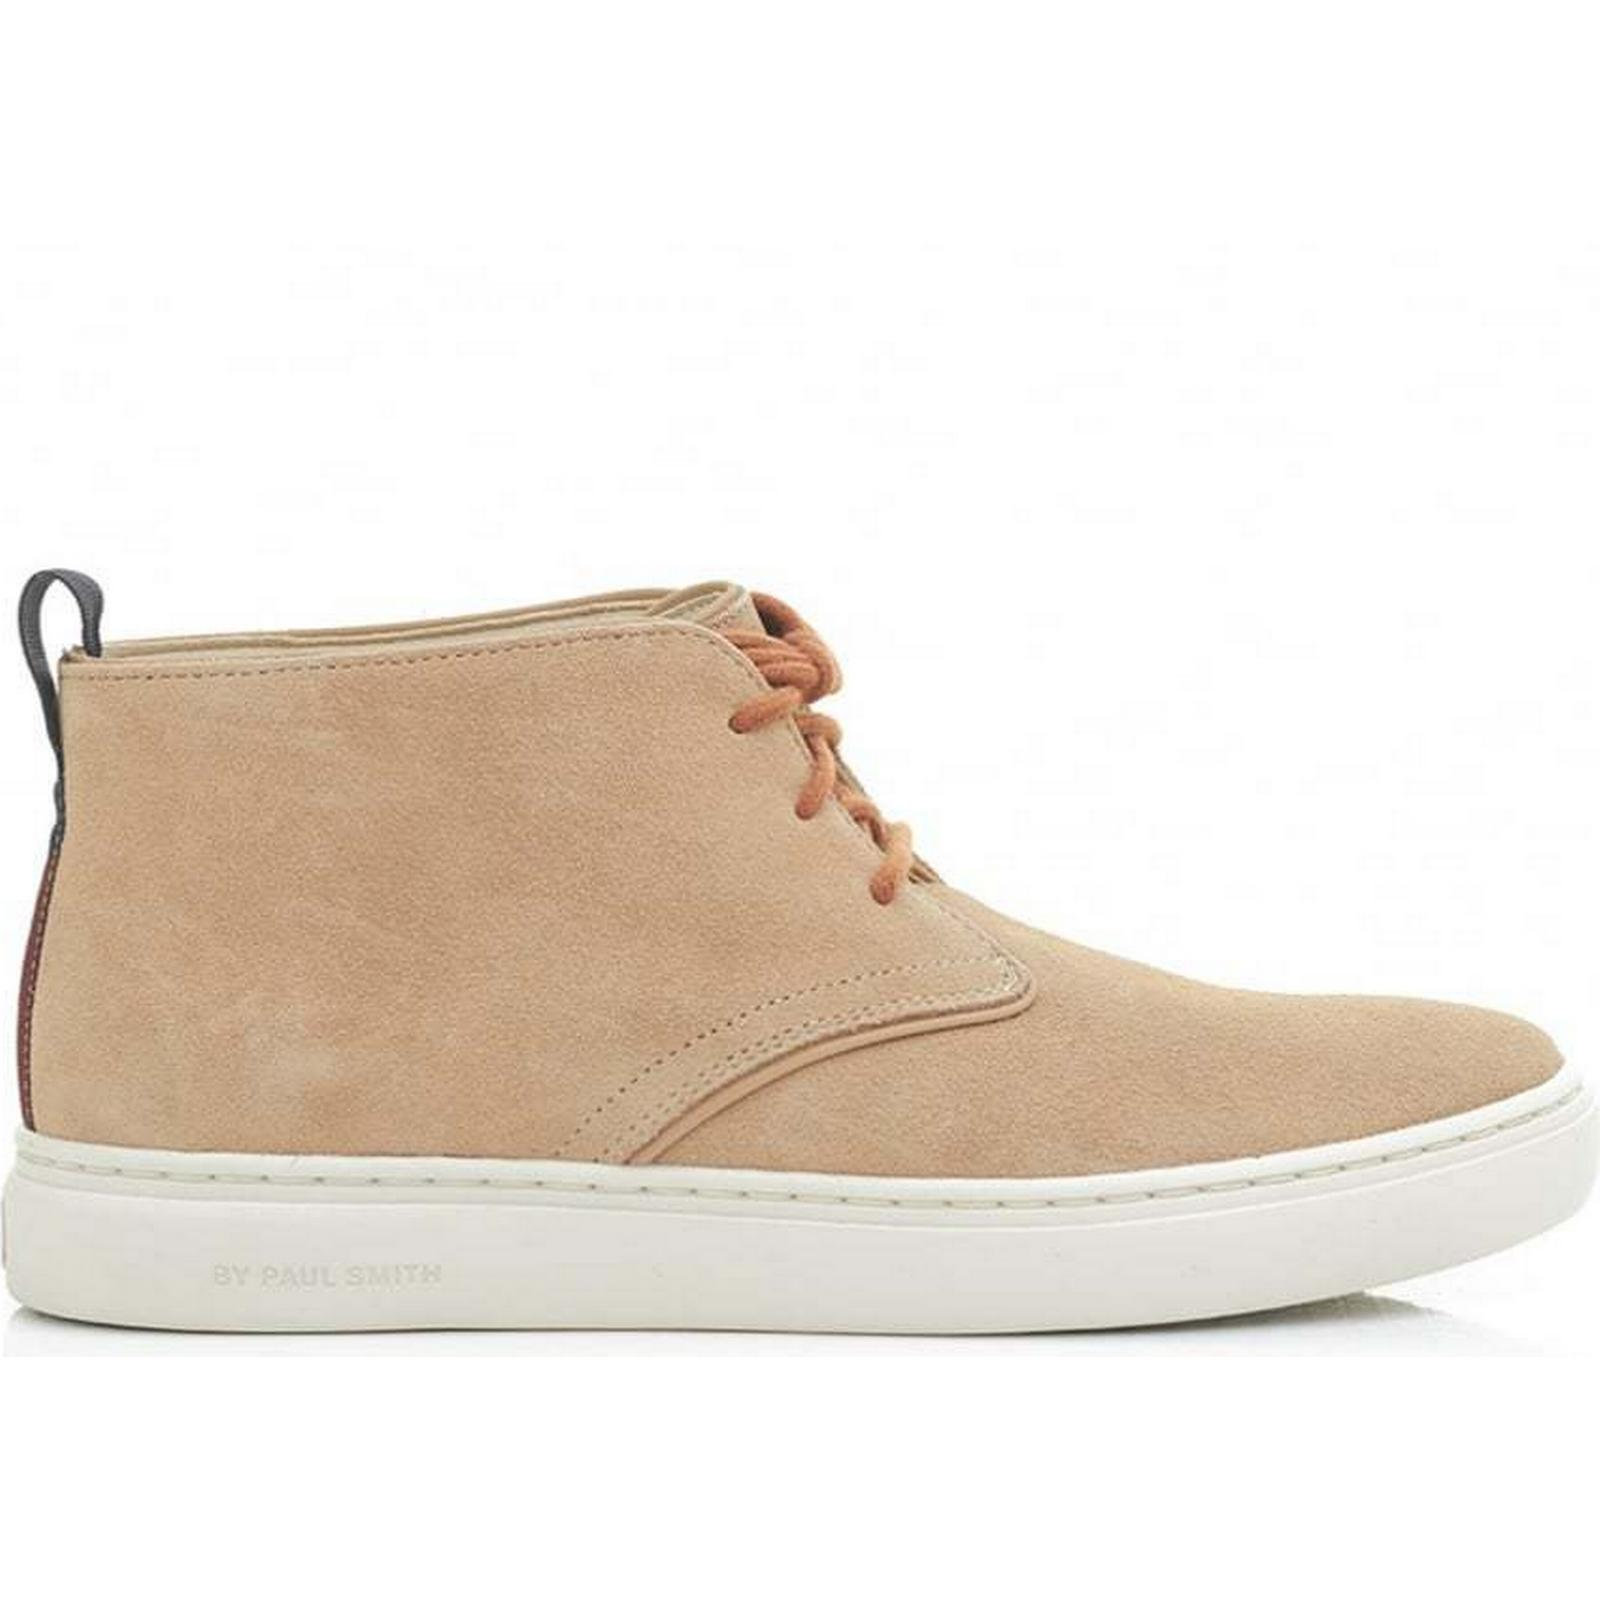 Paul Smith Fong Suede SAND, Cupsole Chukka Boots Colour: SAND, Suede Size: 7 6ce8a1